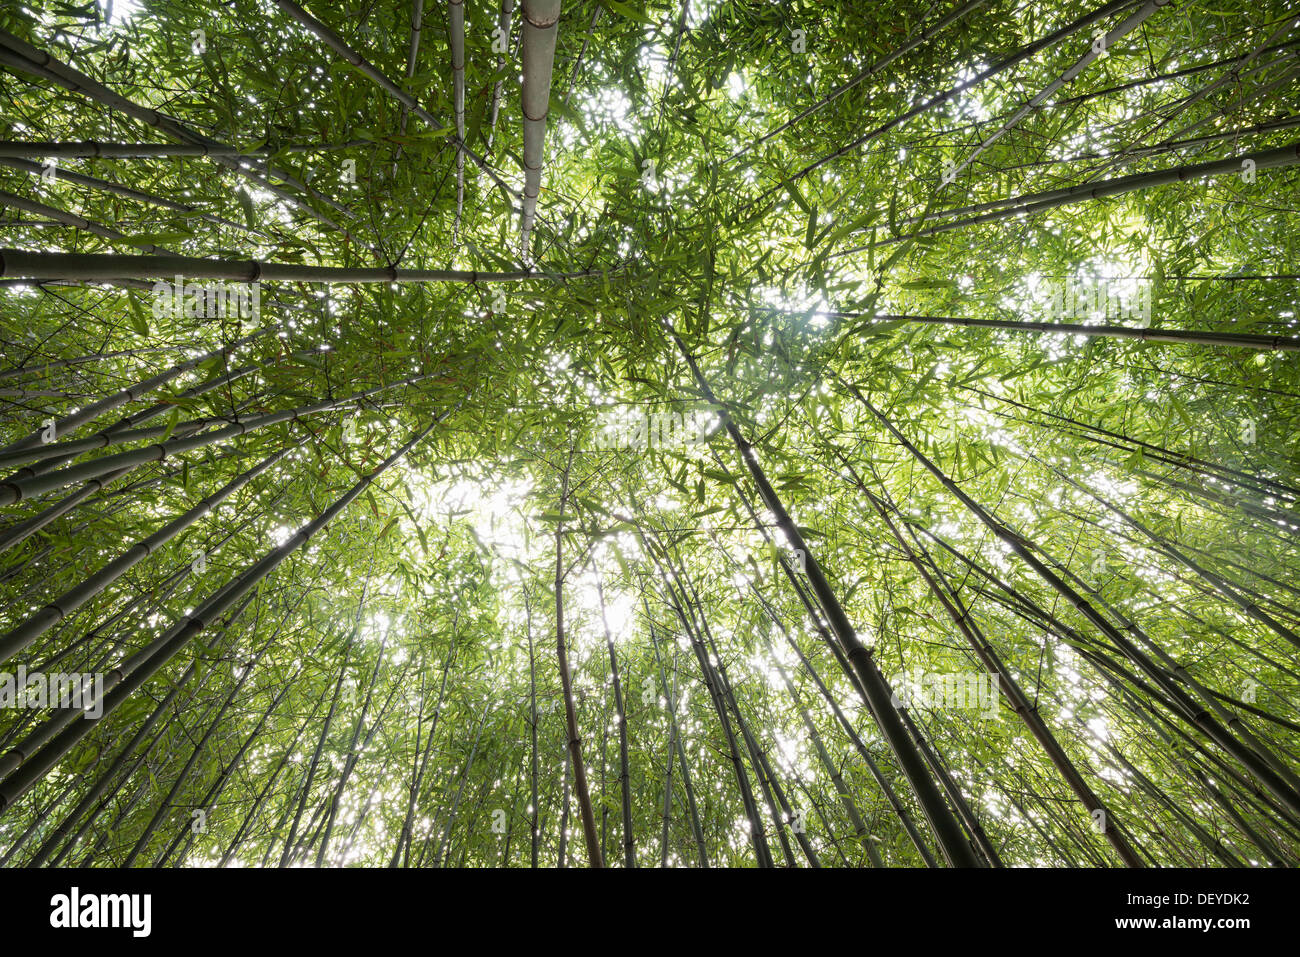 Bamboo grove, perspective from below, bamboo forest, near Freiburg im Breisgau, Black Forest, Baden-Wurttemberg - Stock Image